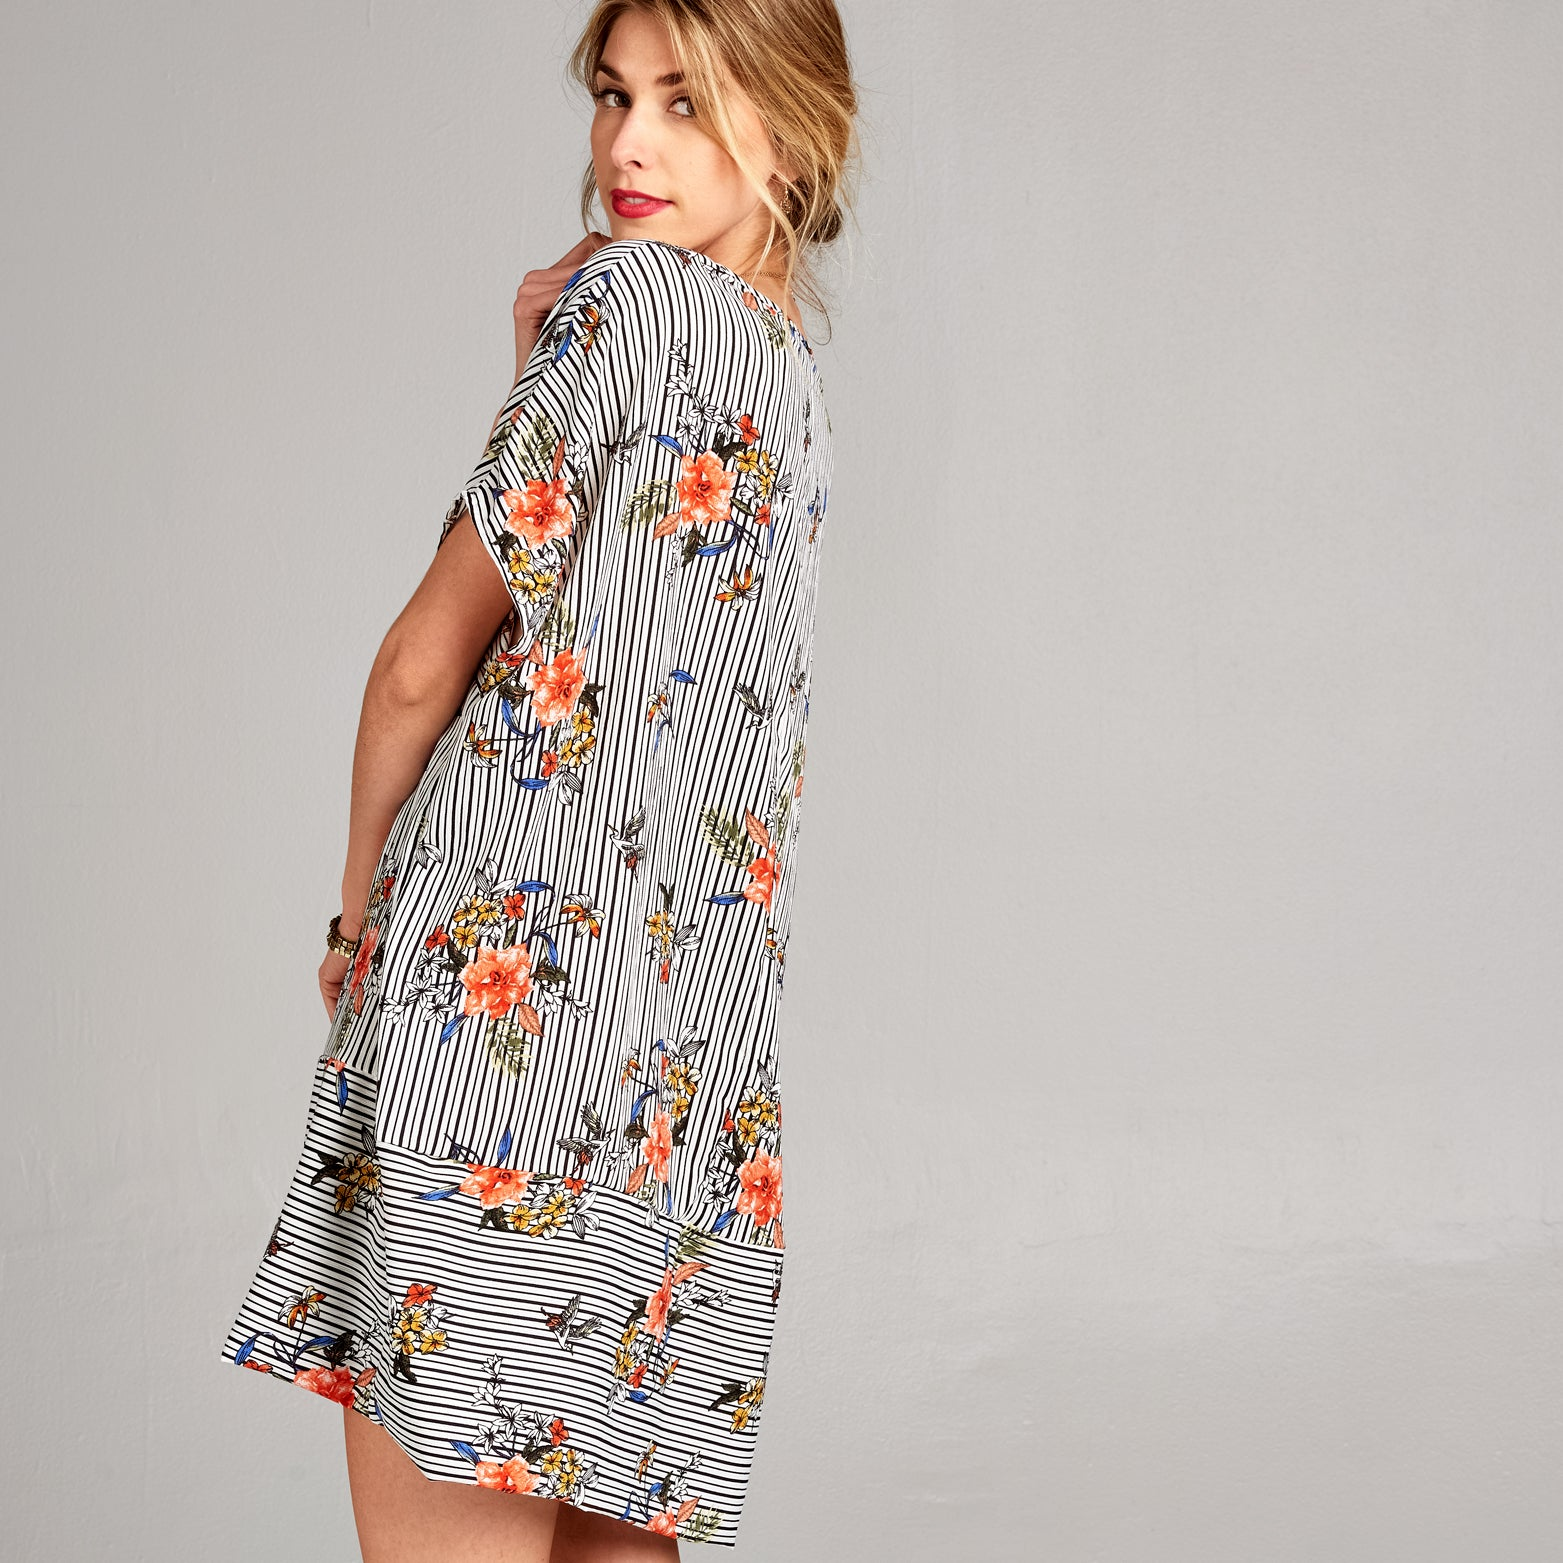 Oversized, Boxy Fit Kimono Sleeve Dress - Love, Kuza